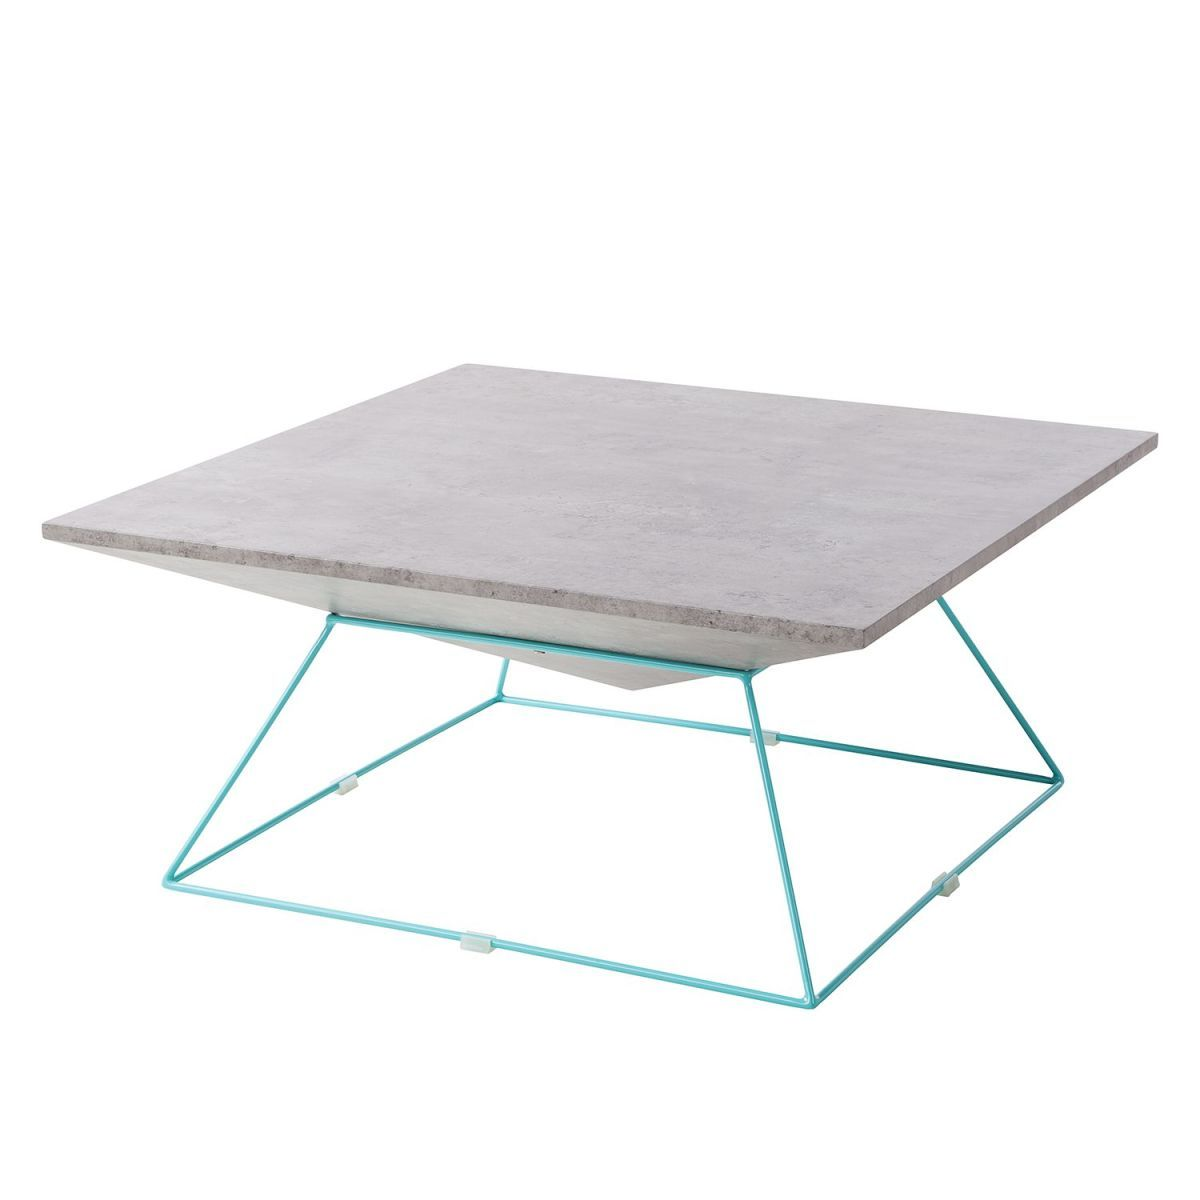 Couchtisch Glas Zurbrüggen Pin By Ladendirekt On Tische Pinterest Table Couch And Sweet Home